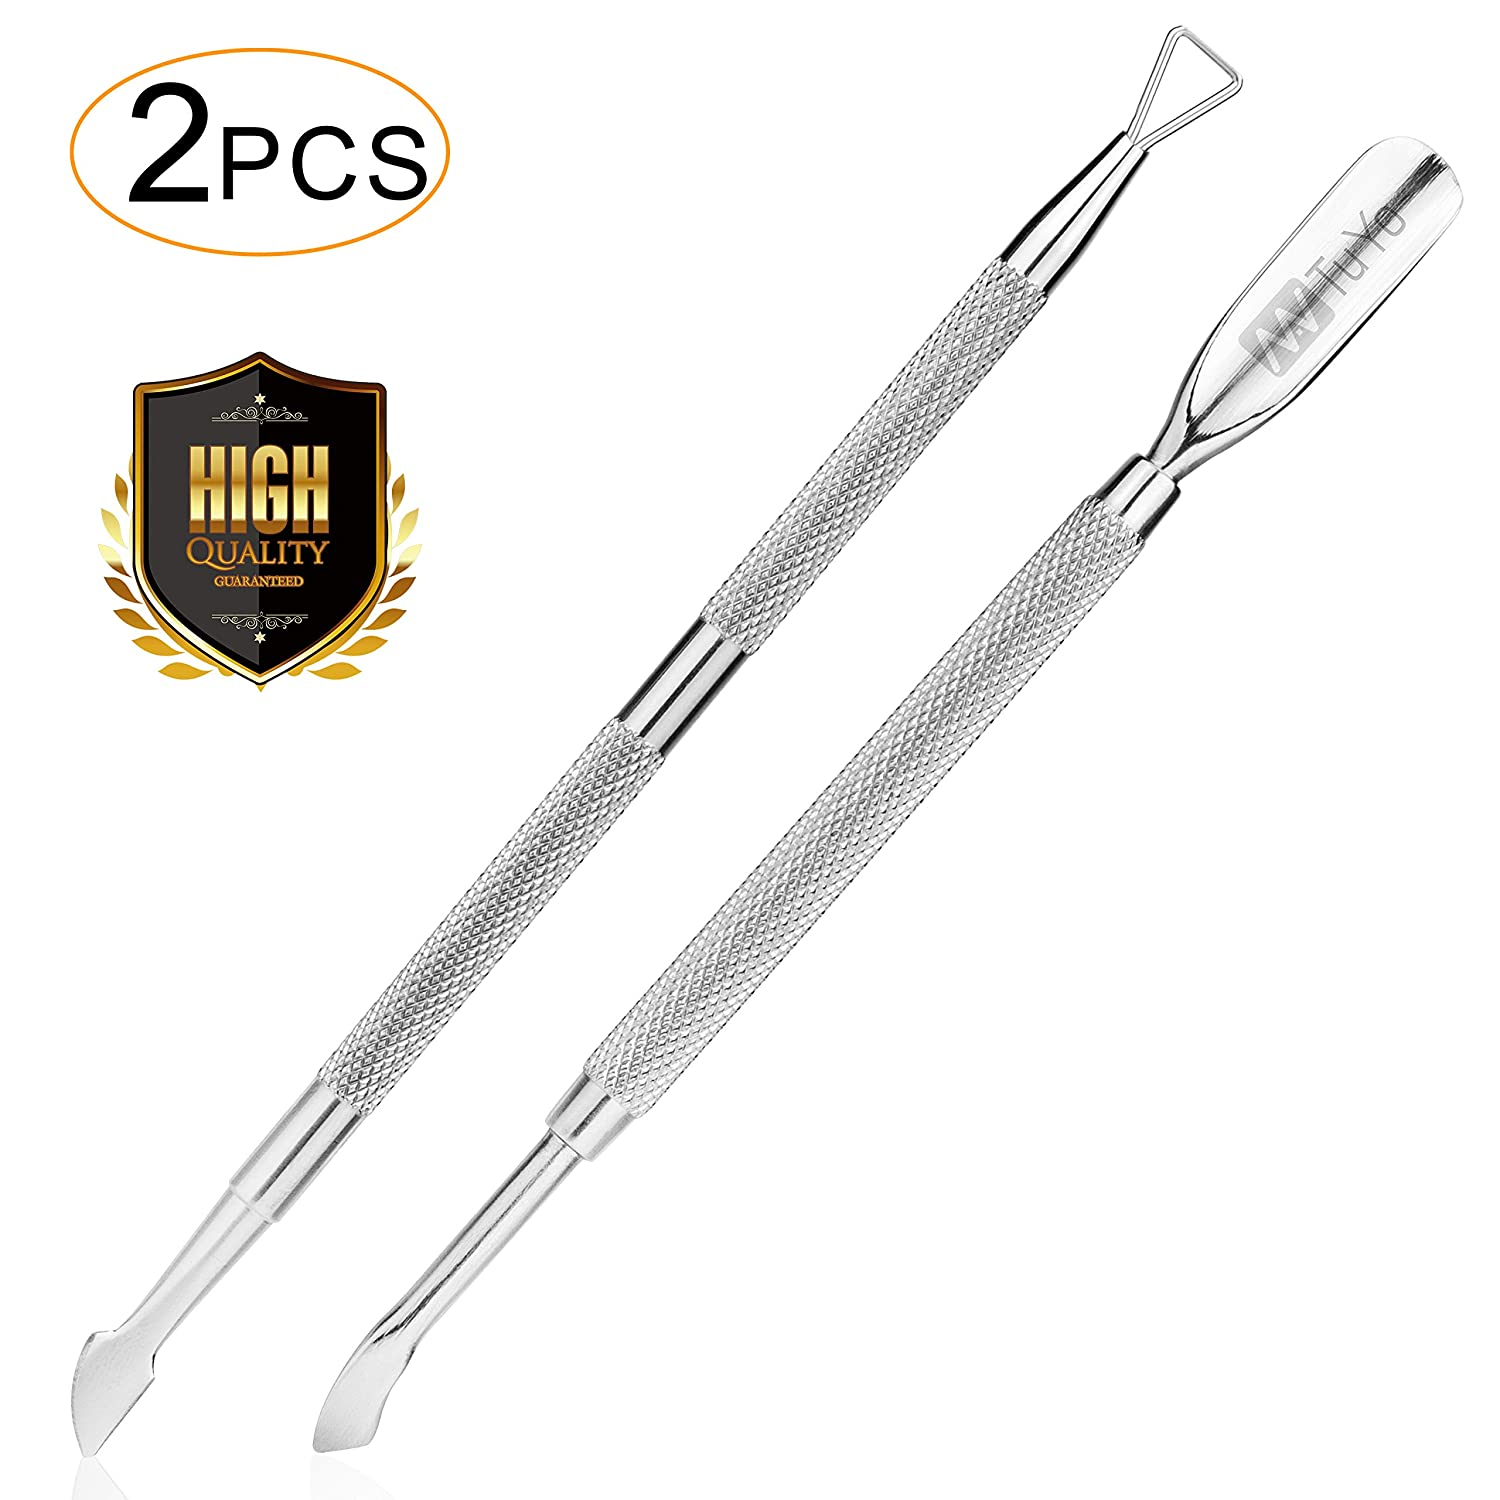 NanTuYo 2PCS Cuticle Pusher and Cutter Set, Triangle Cuticle Nail Pusher Peeler Scraper, Professional Grade Stainless Steel Cuticle Remover, Durable Pedicure Manicure Tools for Fingernails Toenails